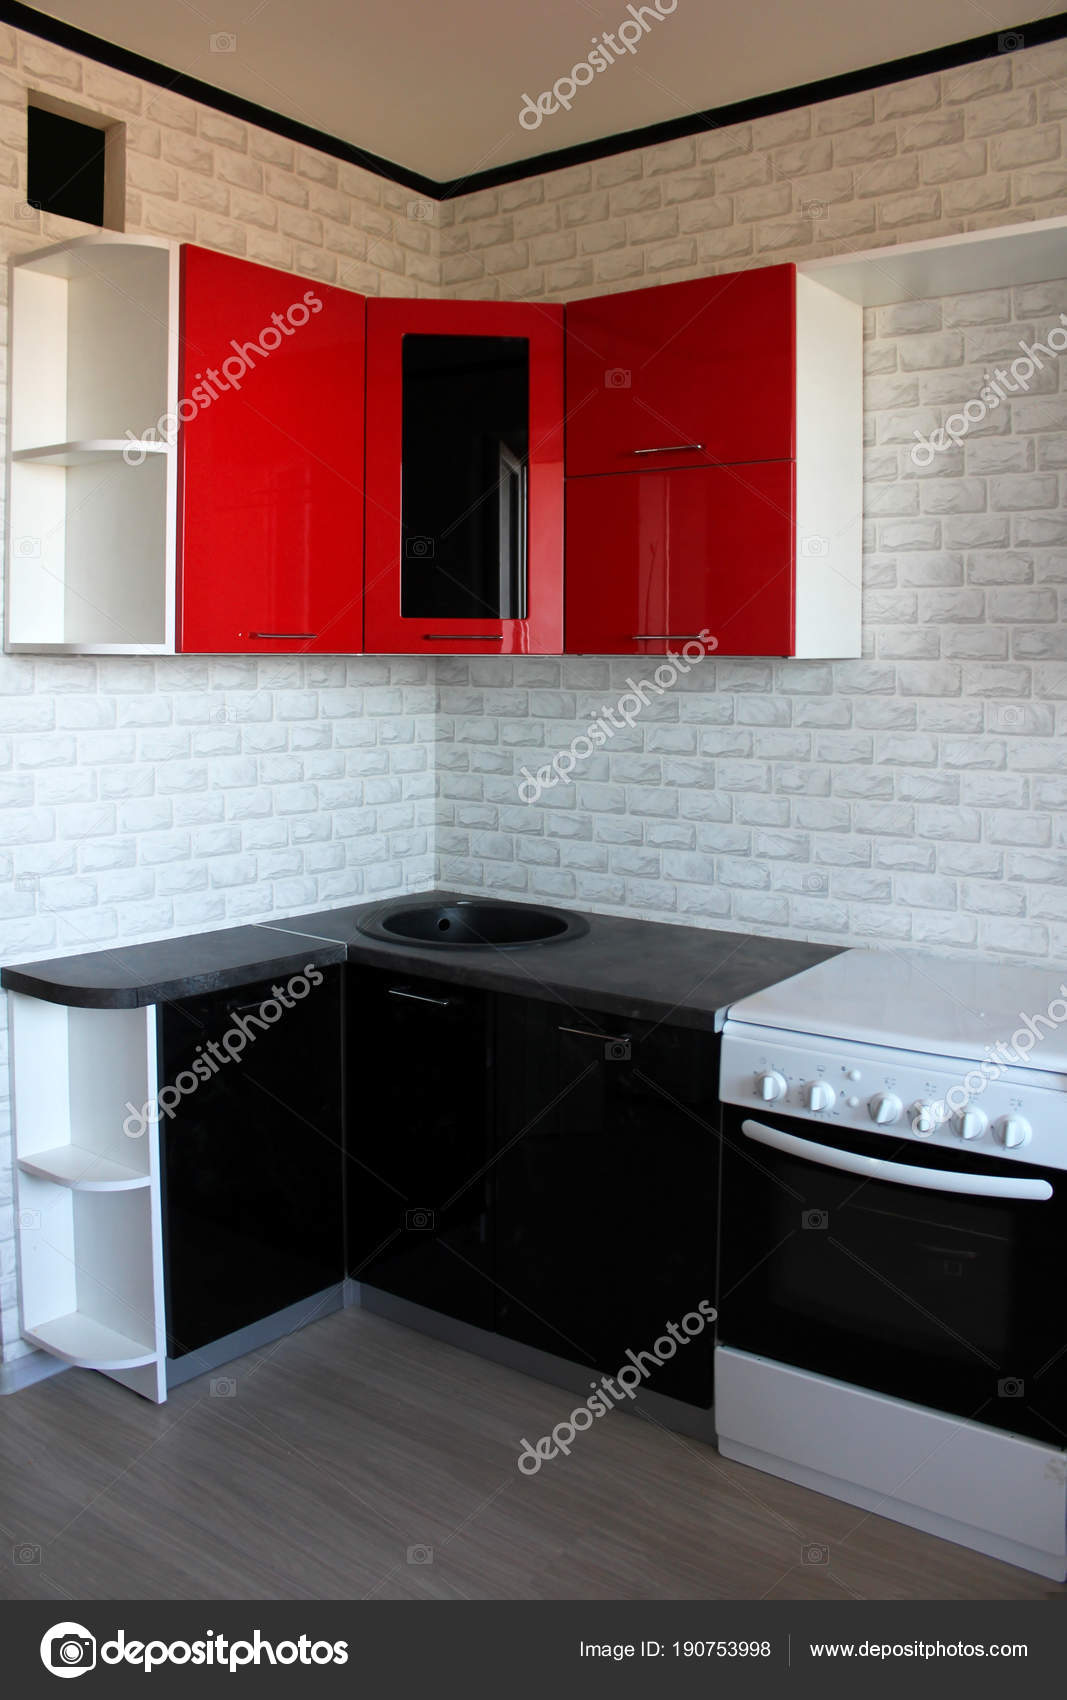 Black Red Kitchen Interior Design — Stock Photo © markasia #190753998